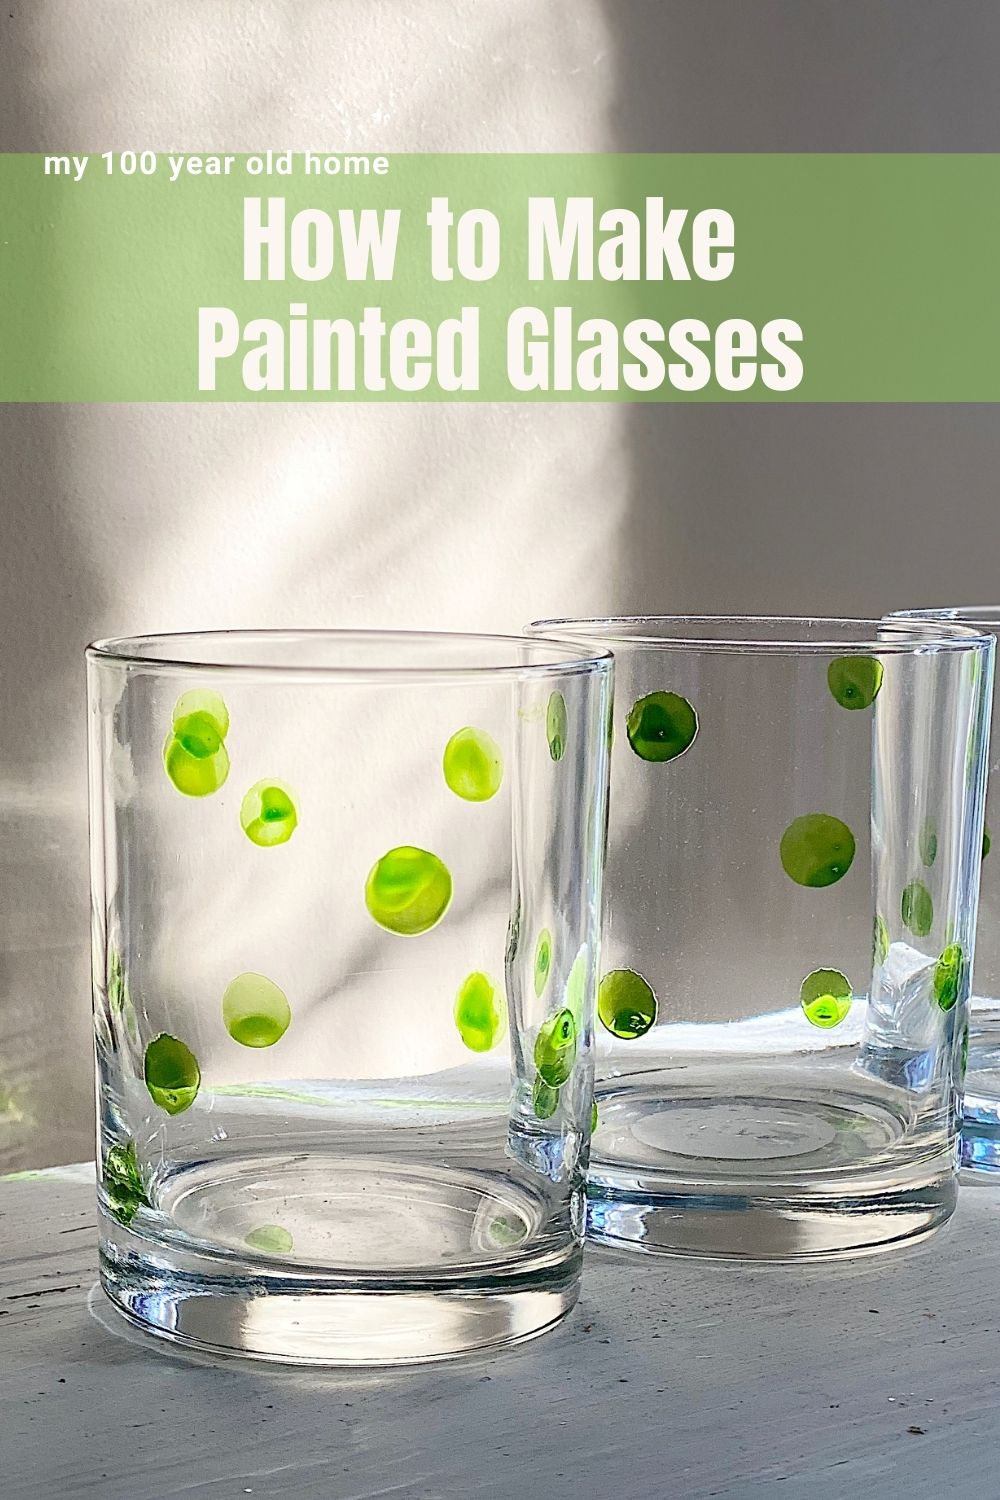 Welcome To Ten Days Of Christmas Crafting. Today I am going to share how to make painted classes.